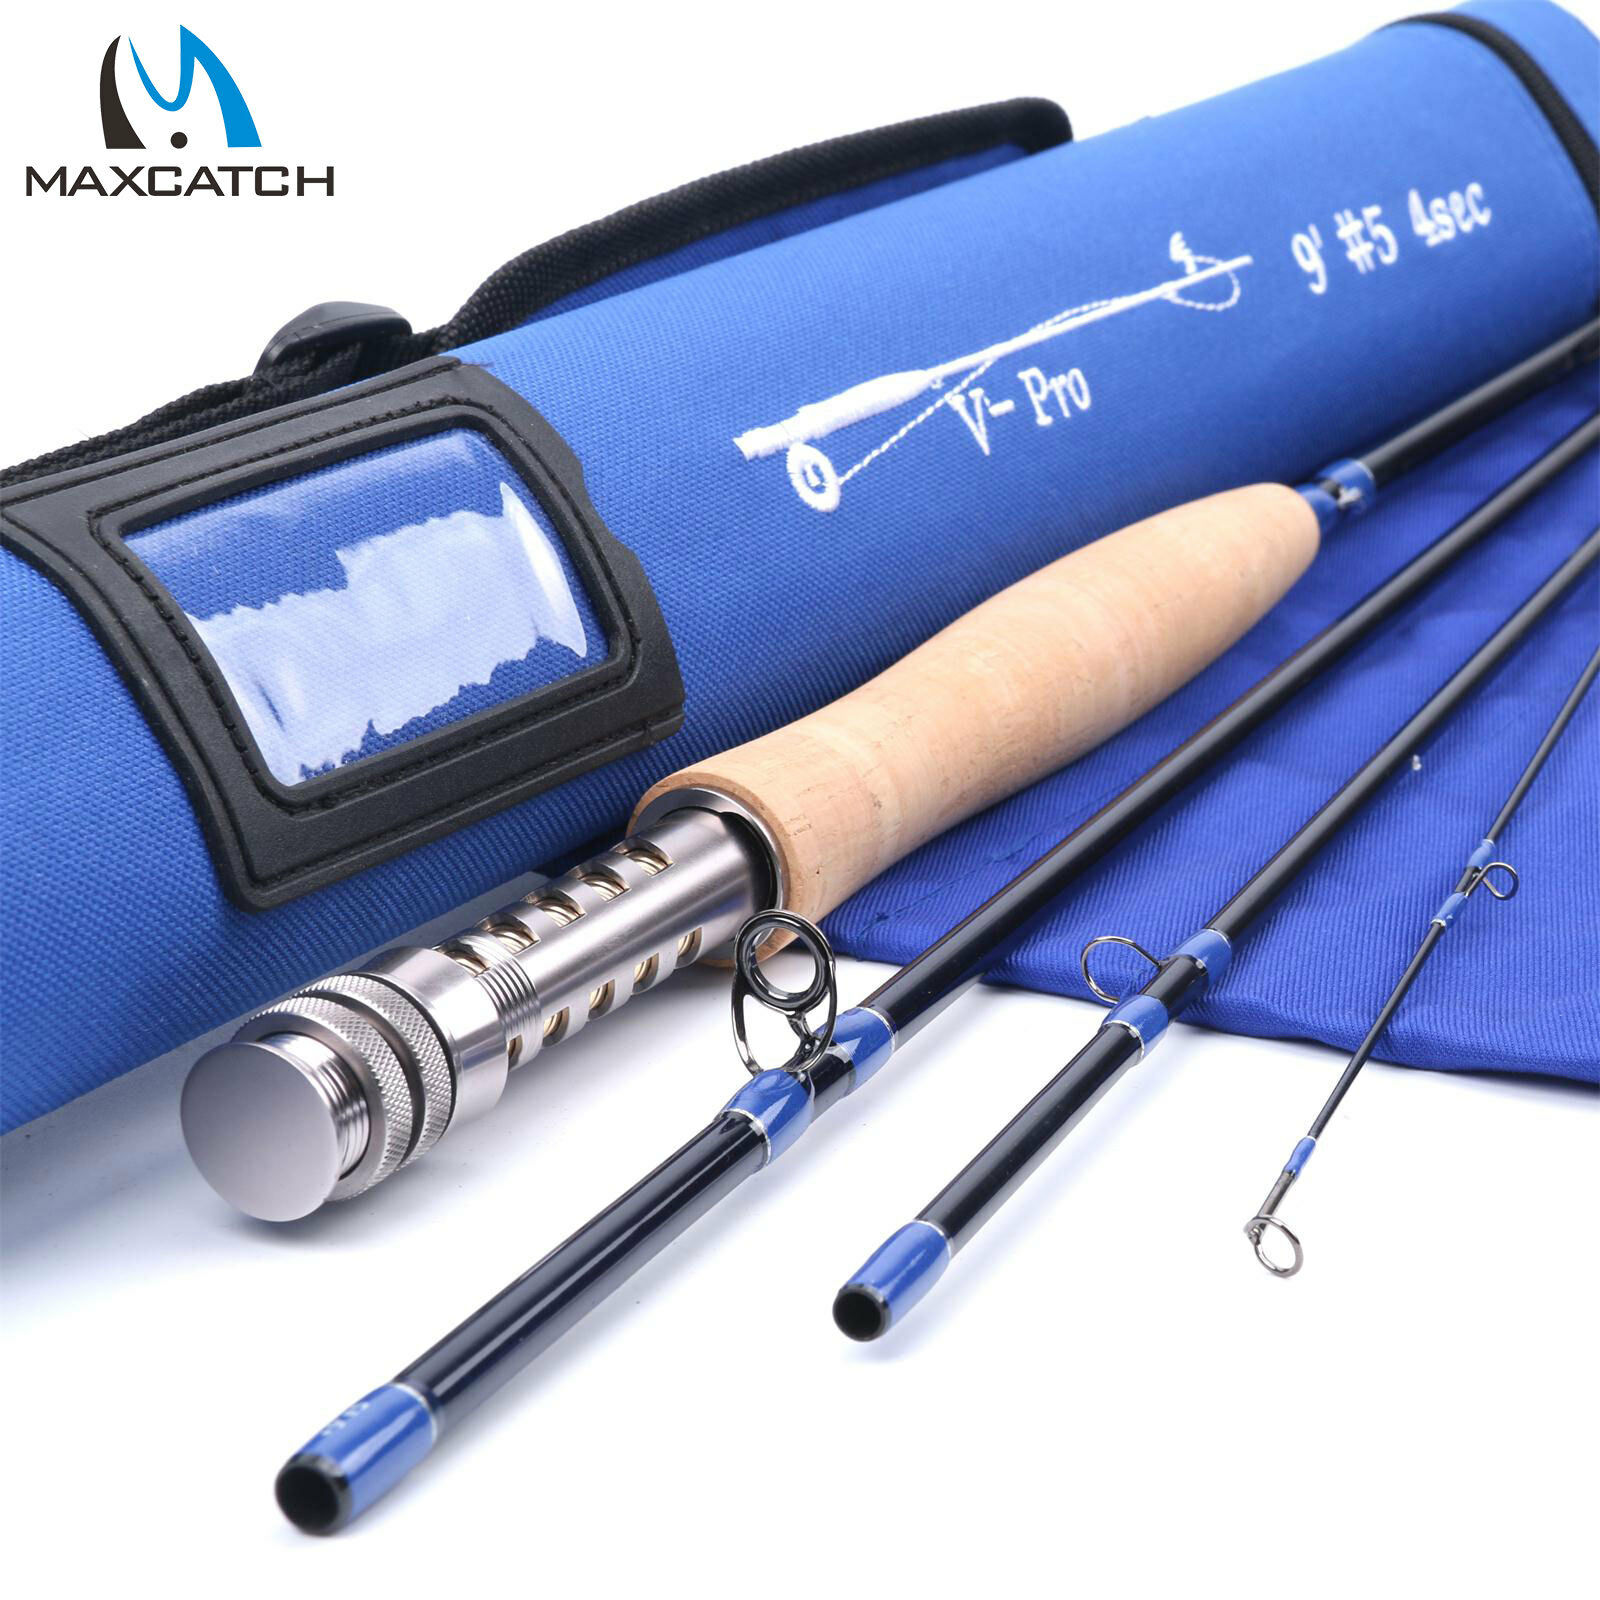 Details about Maxcatch Pro Fly Fishing Rod 4568wt 9ft Fast Action IM10 Carbon Blank W Tube